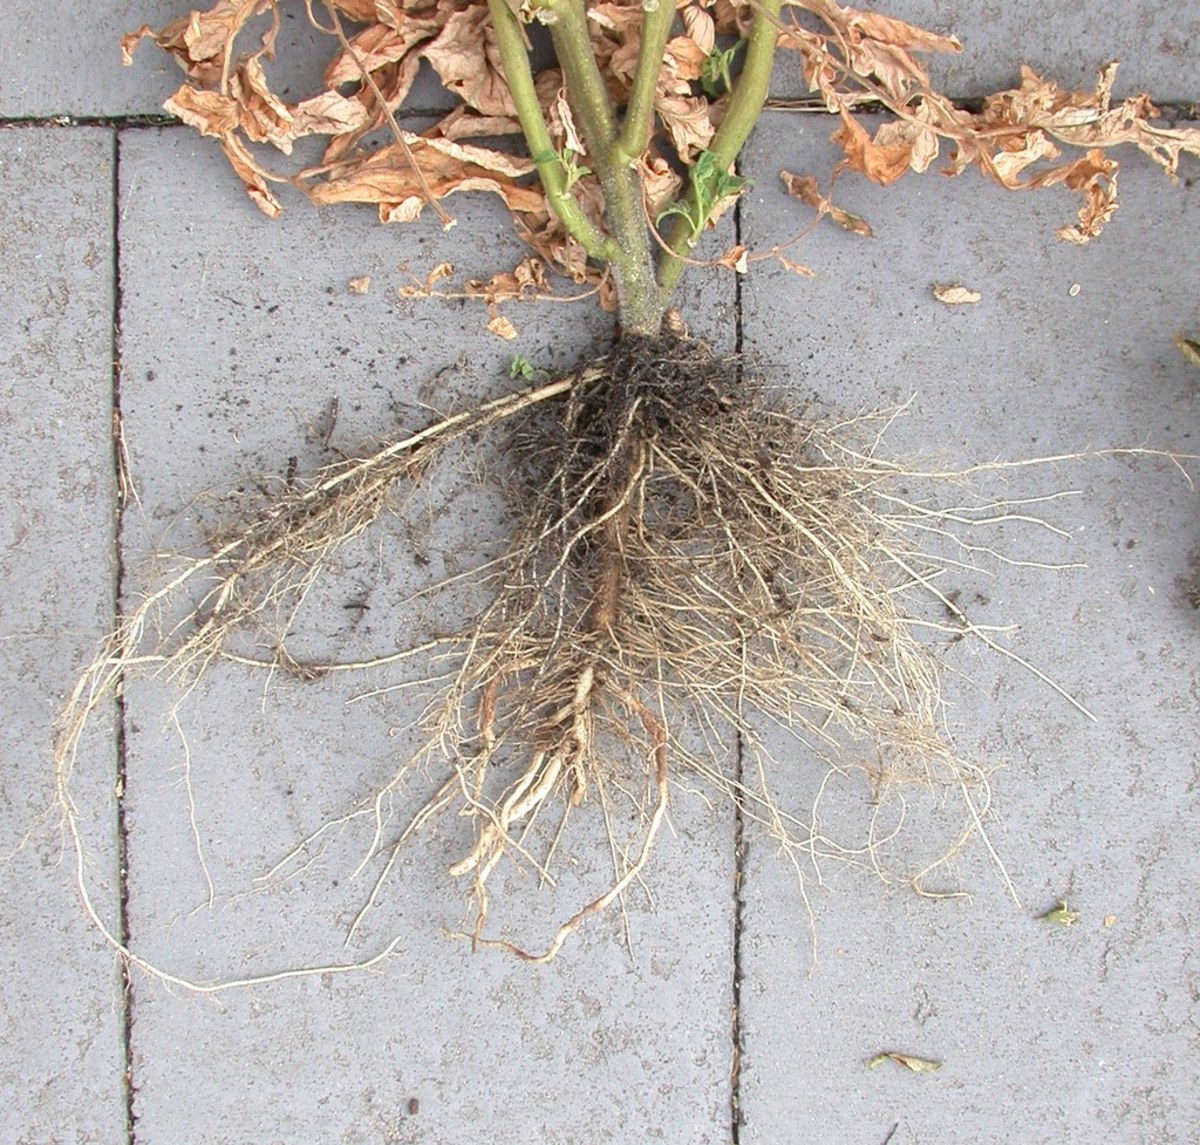 An effective root system on a determinate tomato variety. Notice the bunch of roots that have grown out of the buried stem.